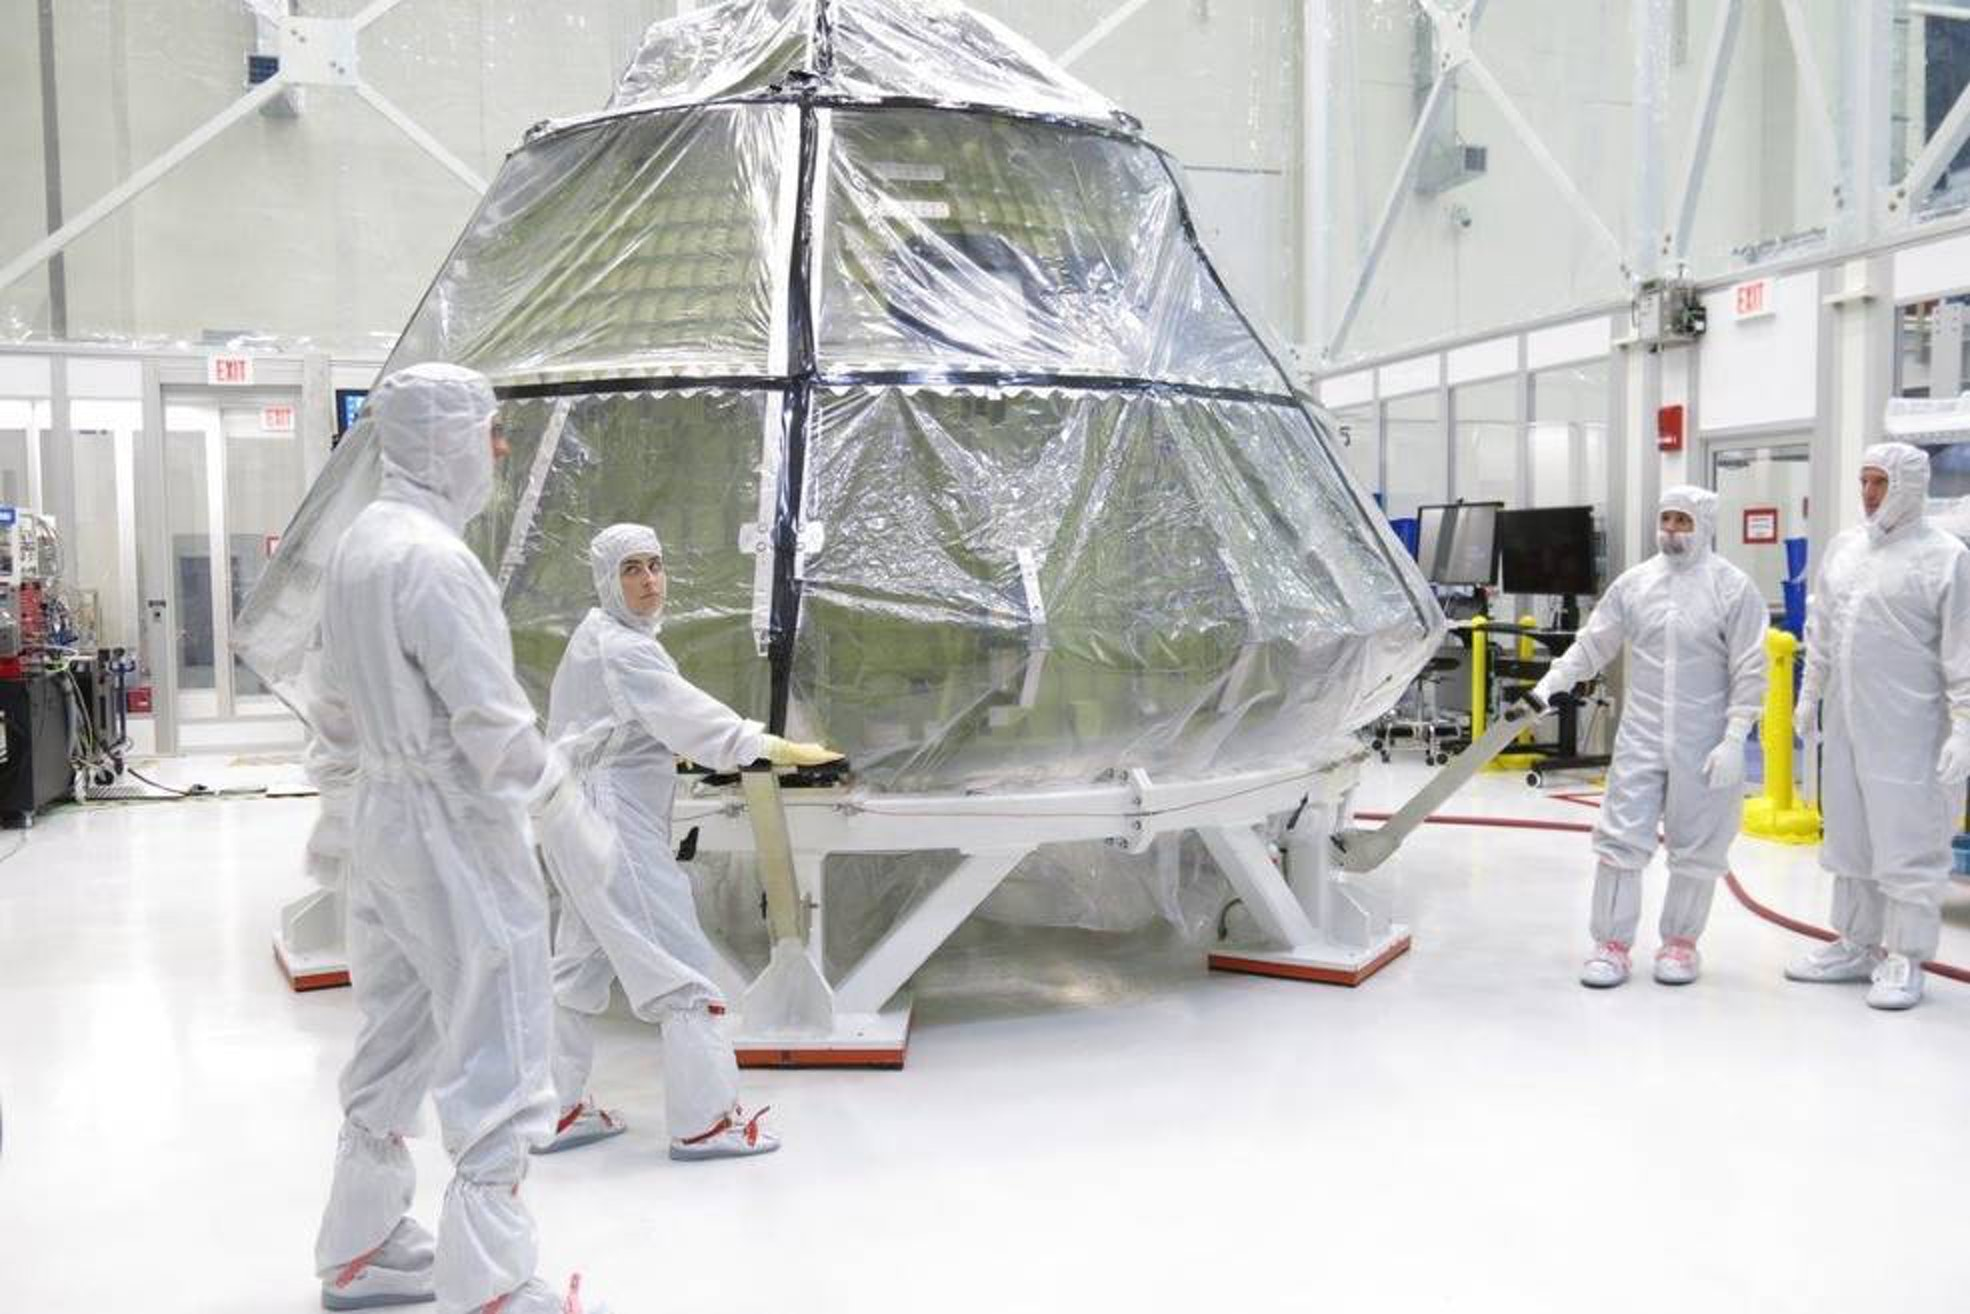 The Orion crew module for Exploration Mission 1 was transferred into the clean room inside the Neil Armstrong Operations and Checkout Building at Kennedy Space Center in late July to begin installation of the spacecraft's critical systems, including propellant lines.